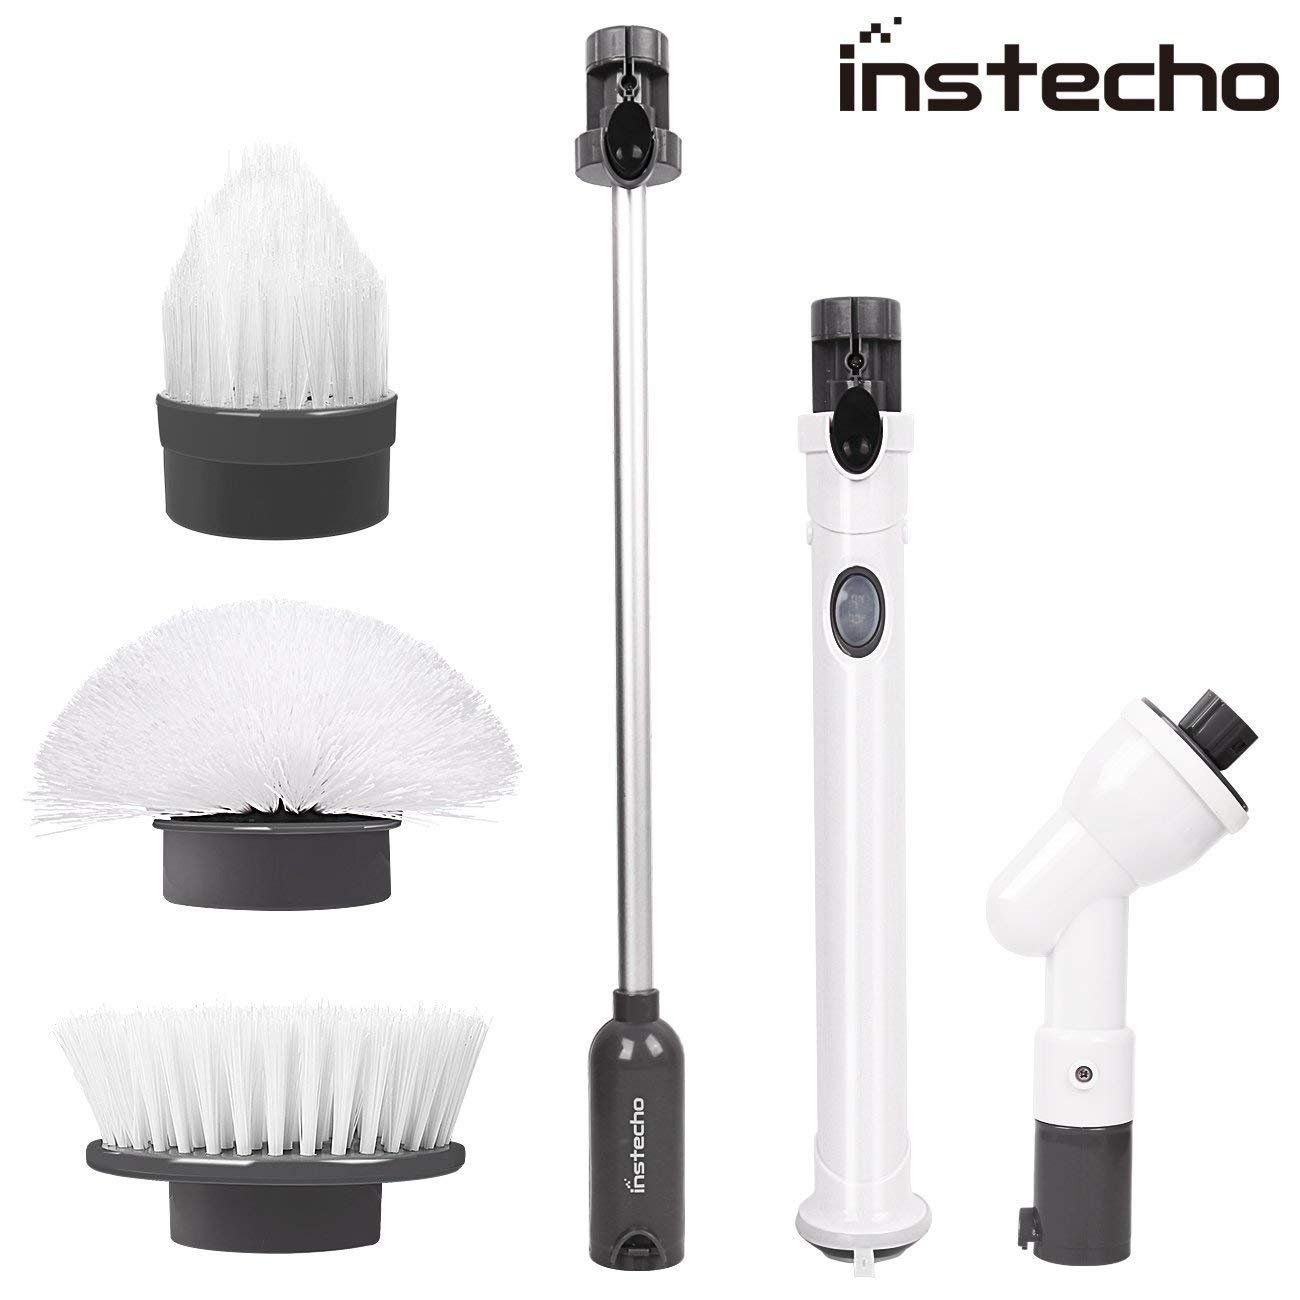 Spin Scrubber, Handheld Rechargeable Cleaner Brush with 3 Replaceable Brush Heads, Scrubber Cleaning Kit for Cleaning Tub, Sink, Shower, Toilet, Bath (Gray)